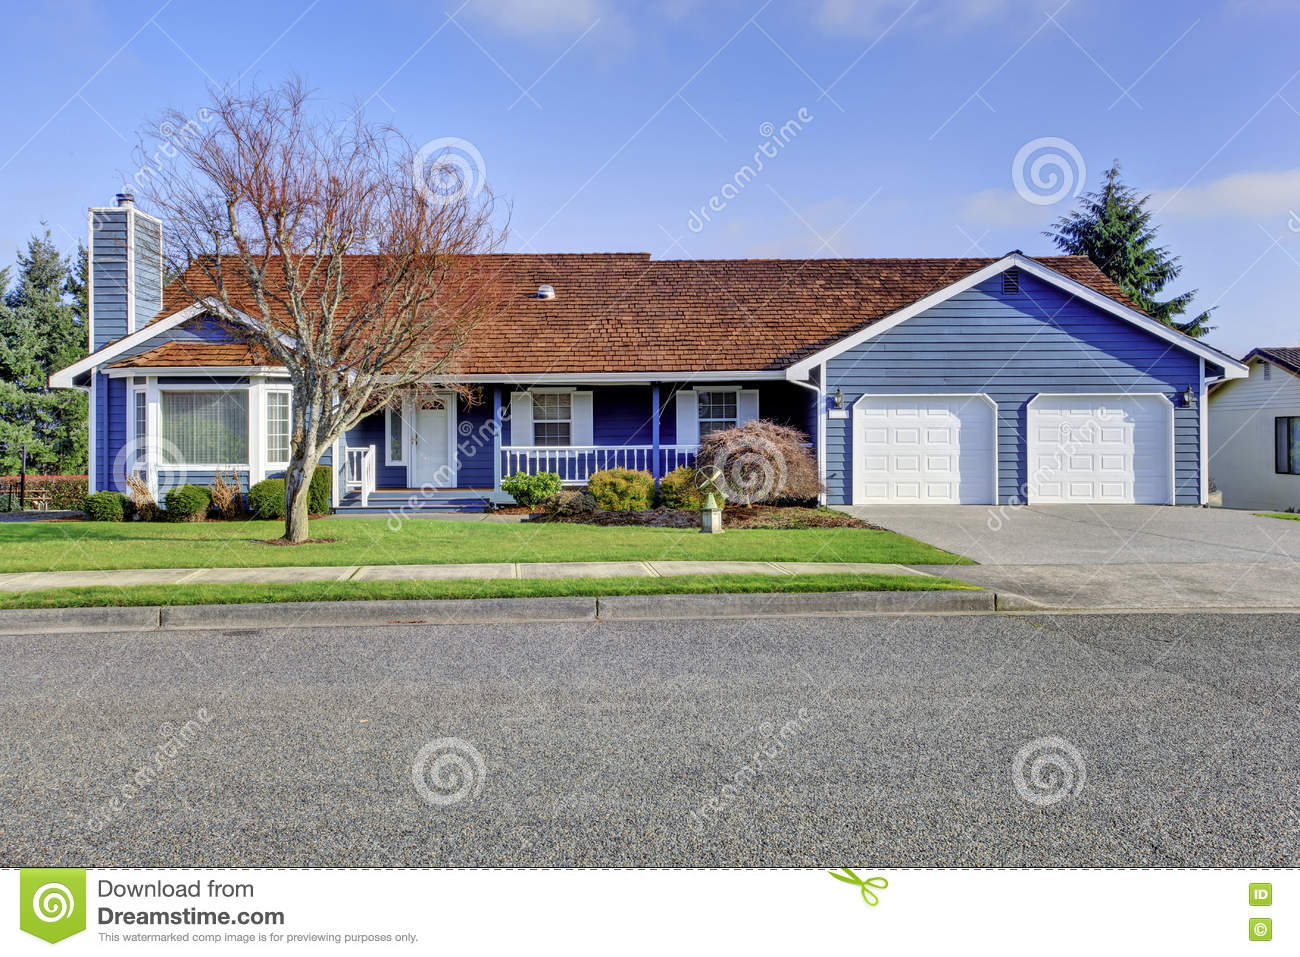 Curb appeal one level american house with blue and white - White house with blue trim ...